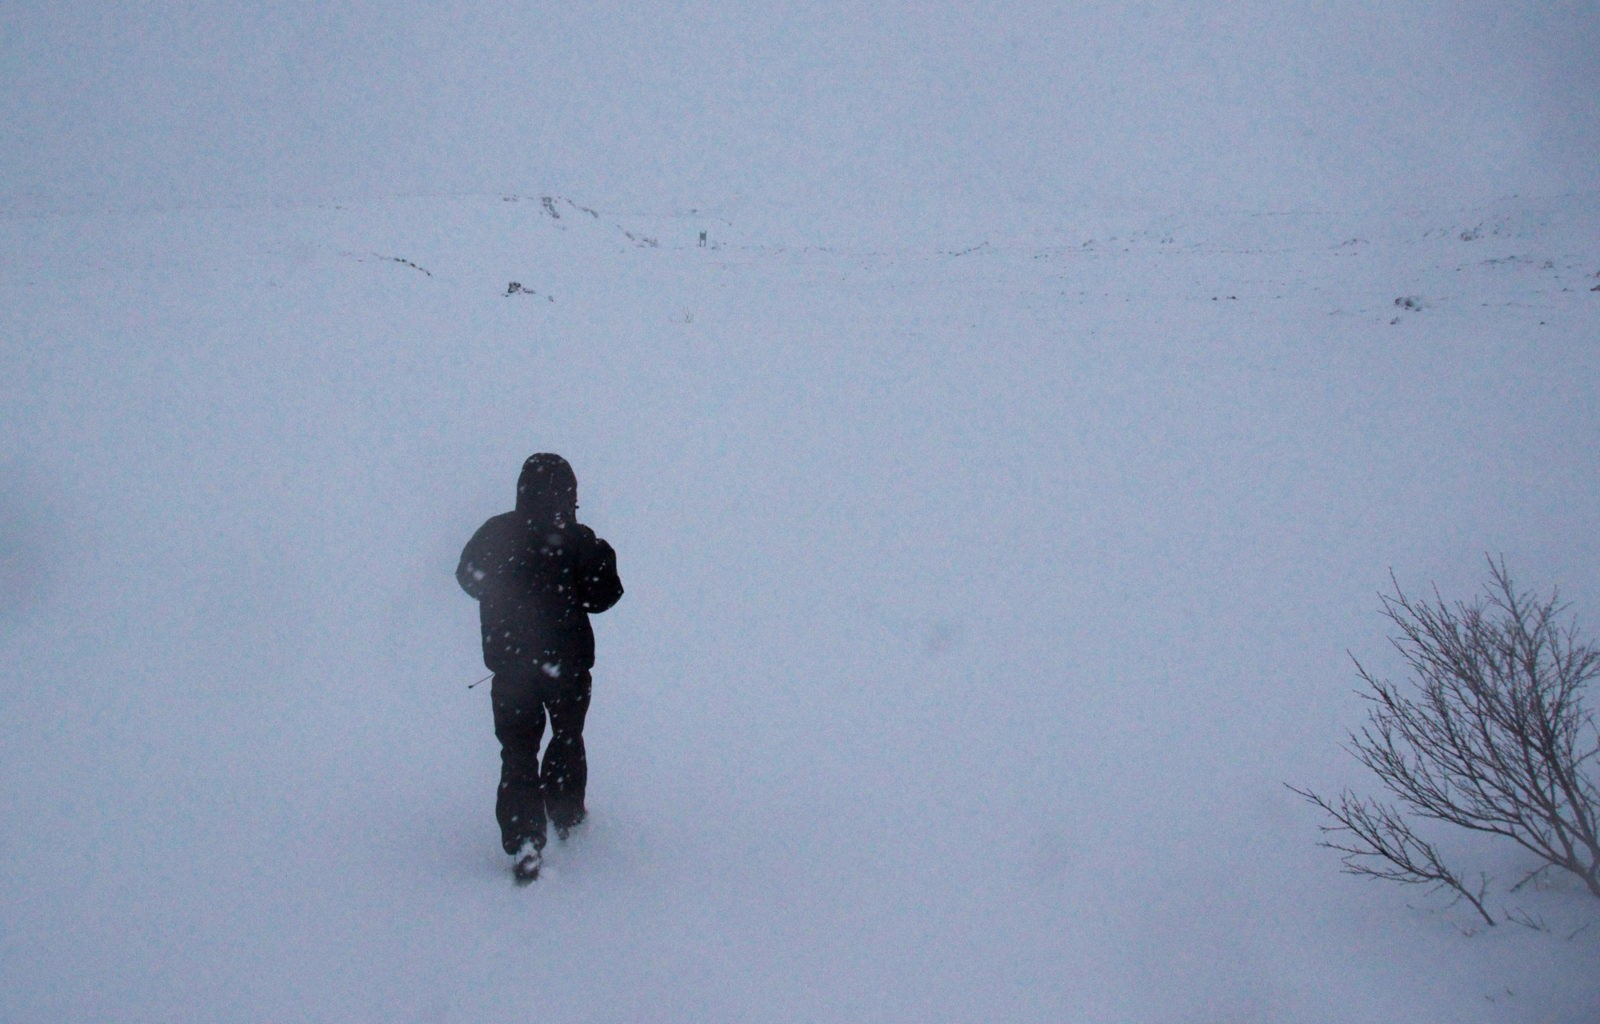 Magnus was walking fast in a place where the snow covered every inch of the land.